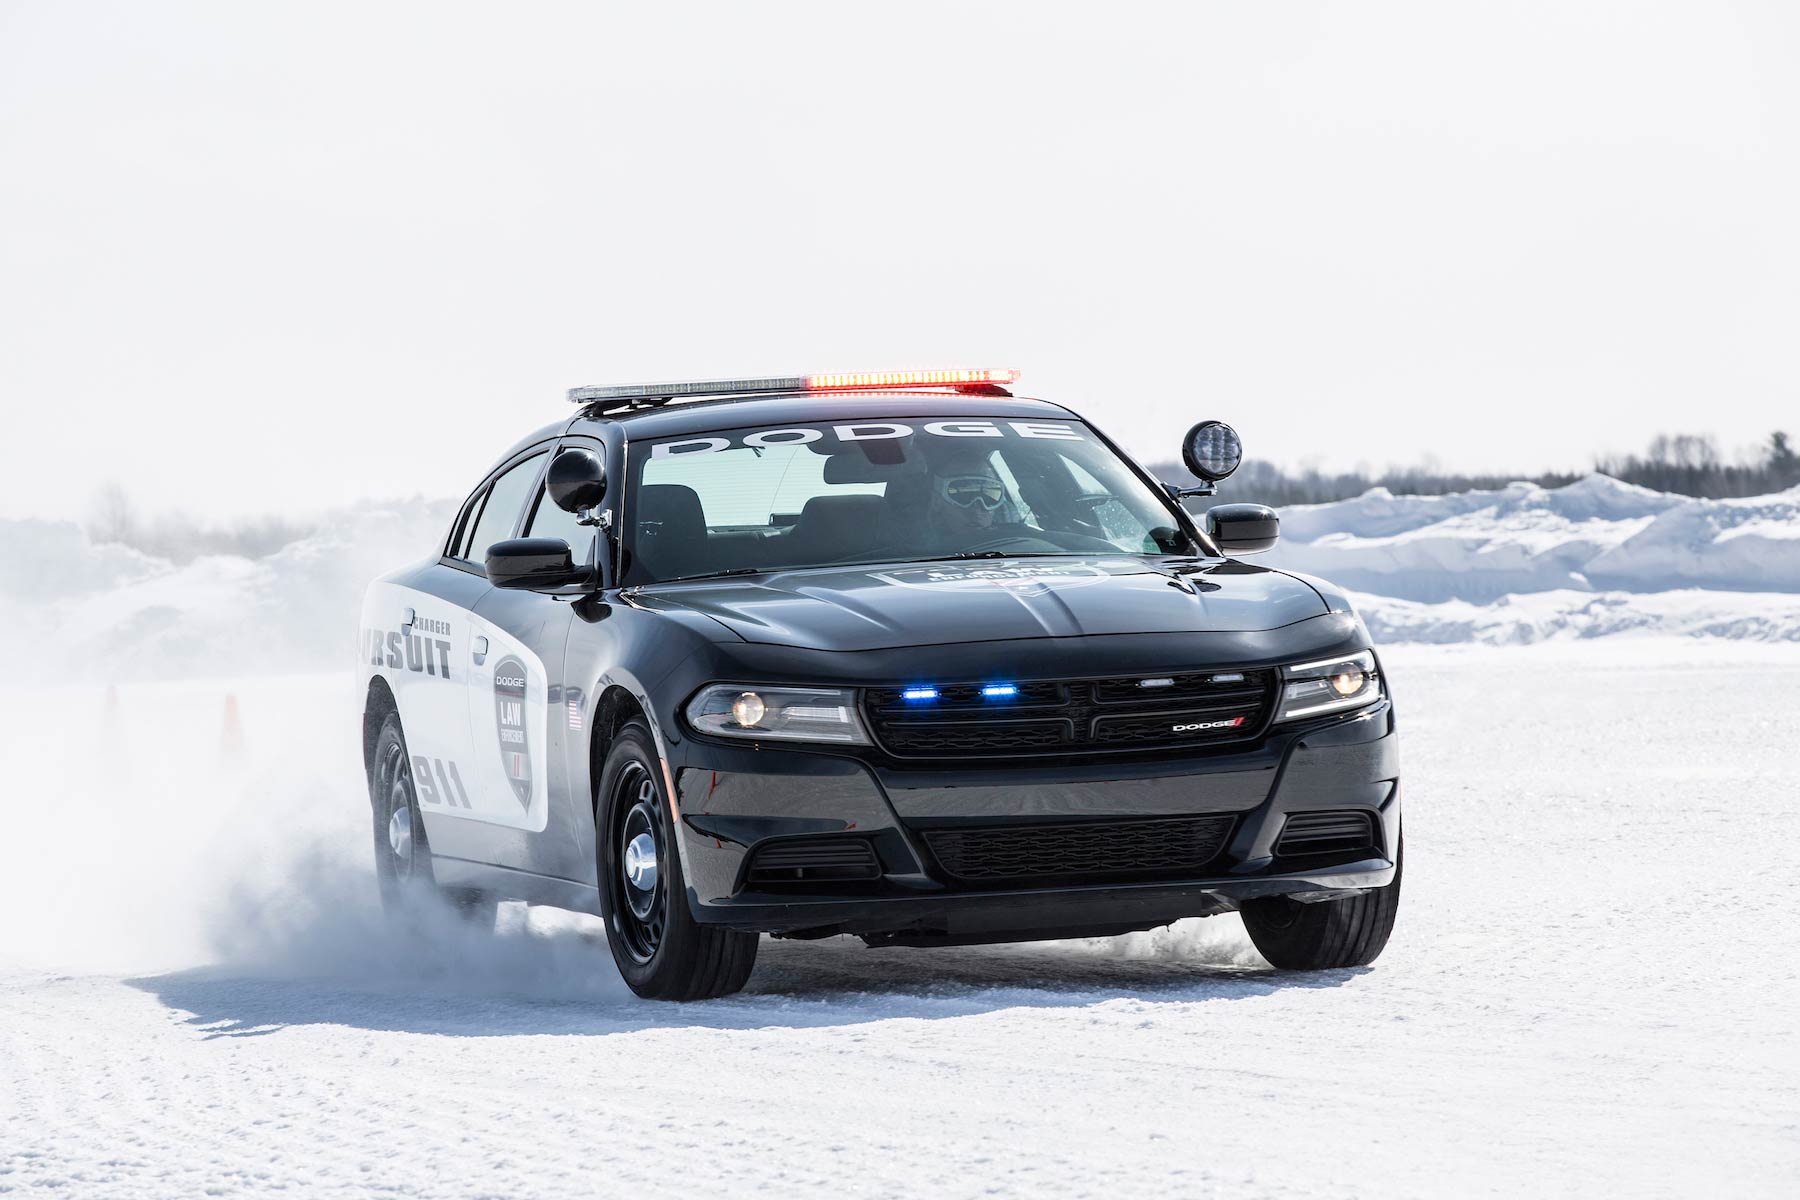 dodge creates v8 us police pursuit version of durango suv motoring research. Black Bedroom Furniture Sets. Home Design Ideas